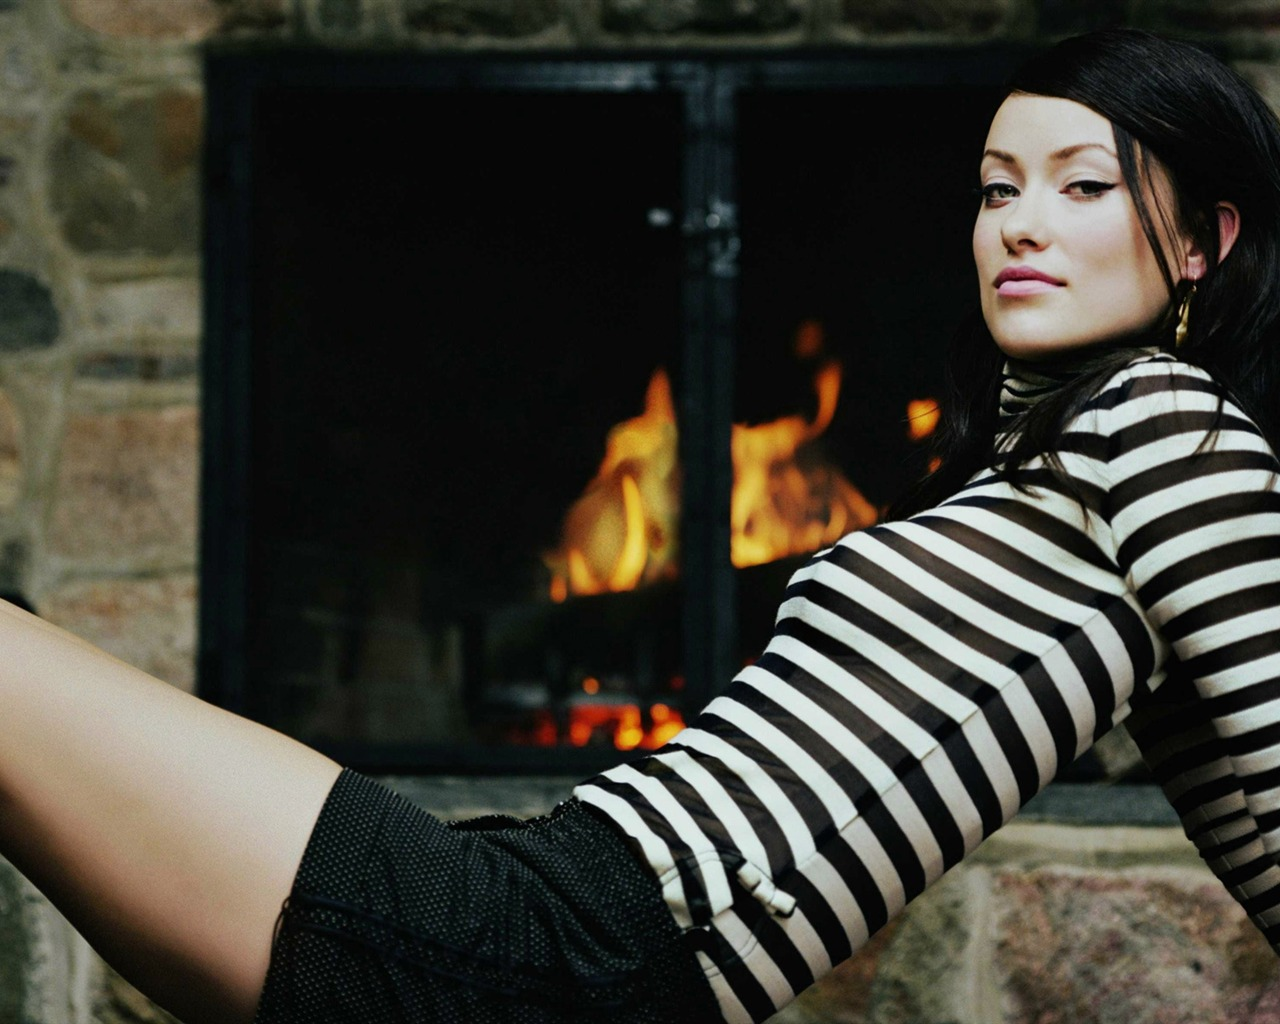 Olivia Wilde #004 - 1280x1024 Wallpapers Pictures Photos Images